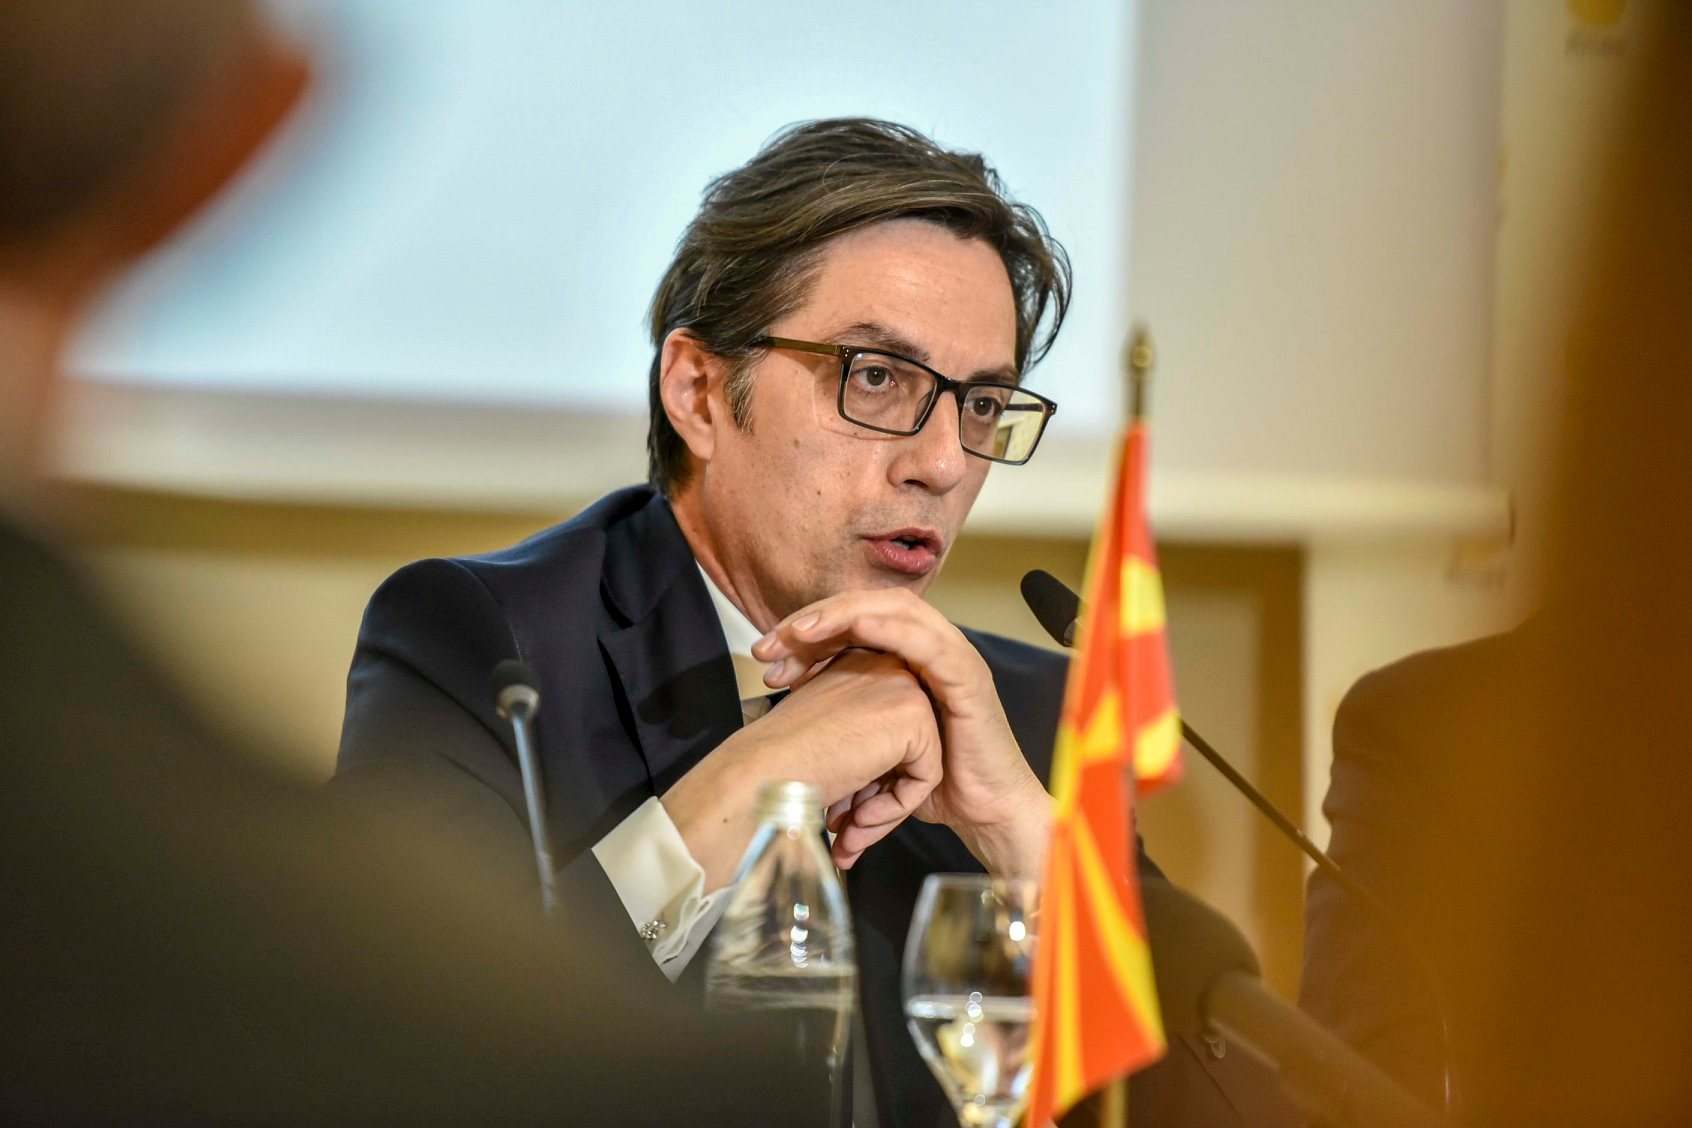 Pendarovski: Discussing changes to the Constitution or changing the Good Neighbourliness Agreement with Bulgaria is preposterous